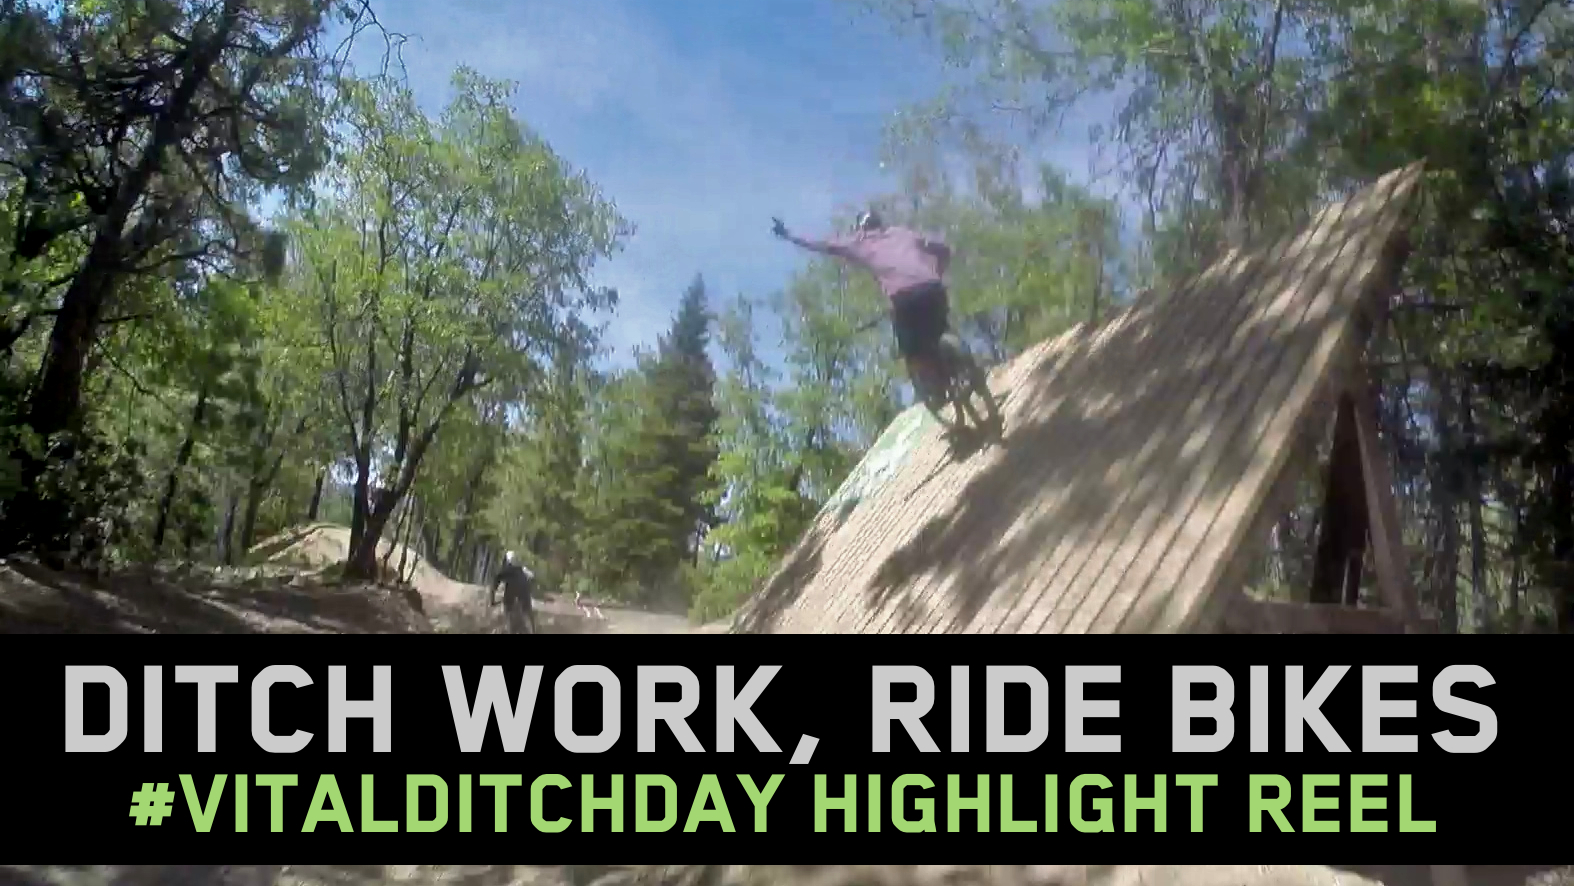 Ditch Work, Ride Bikes - Vital Ditch Day Highlight Reel